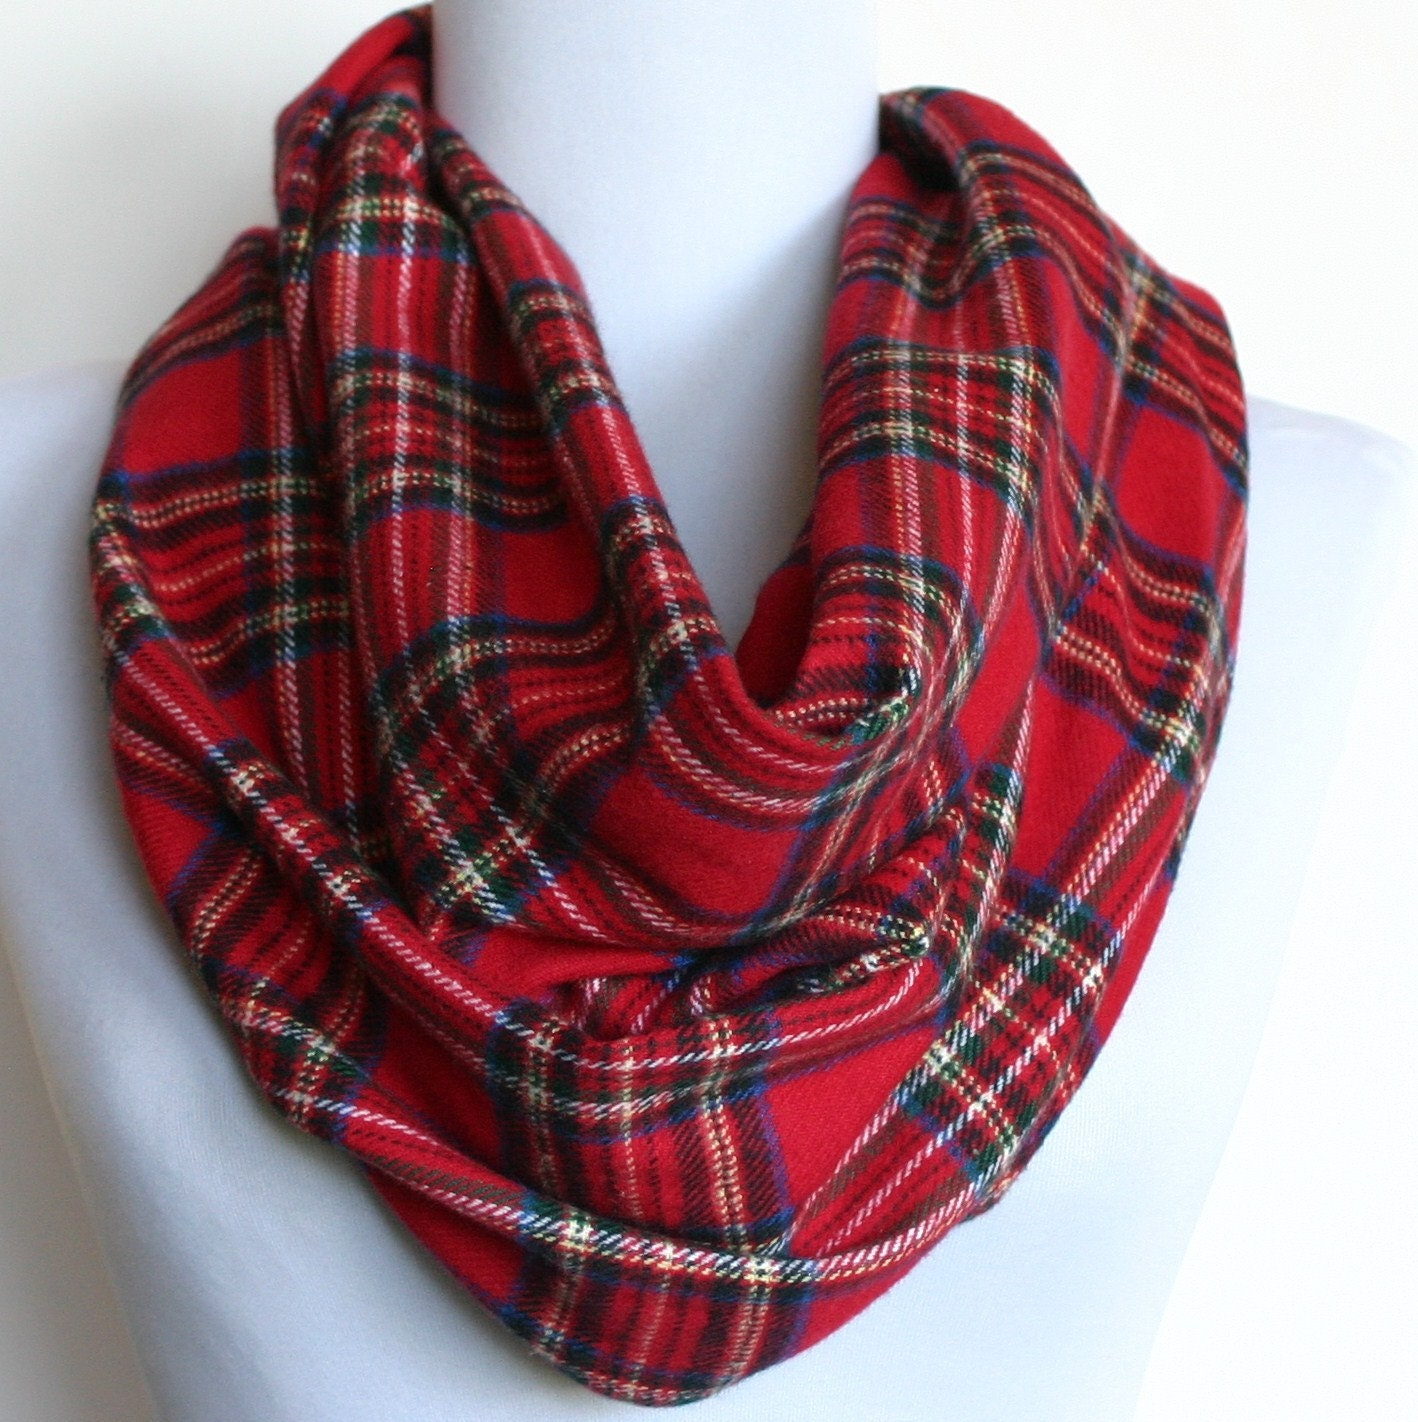 You searched for: red infinity scarf! Etsy is the home to thousands of handmade, vintage, and one-of-a-kind products and gifts related to your search. No matter what you're looking for or where you are in the world, our global marketplace of sellers can help you find unique and affordable options. Let's get started!